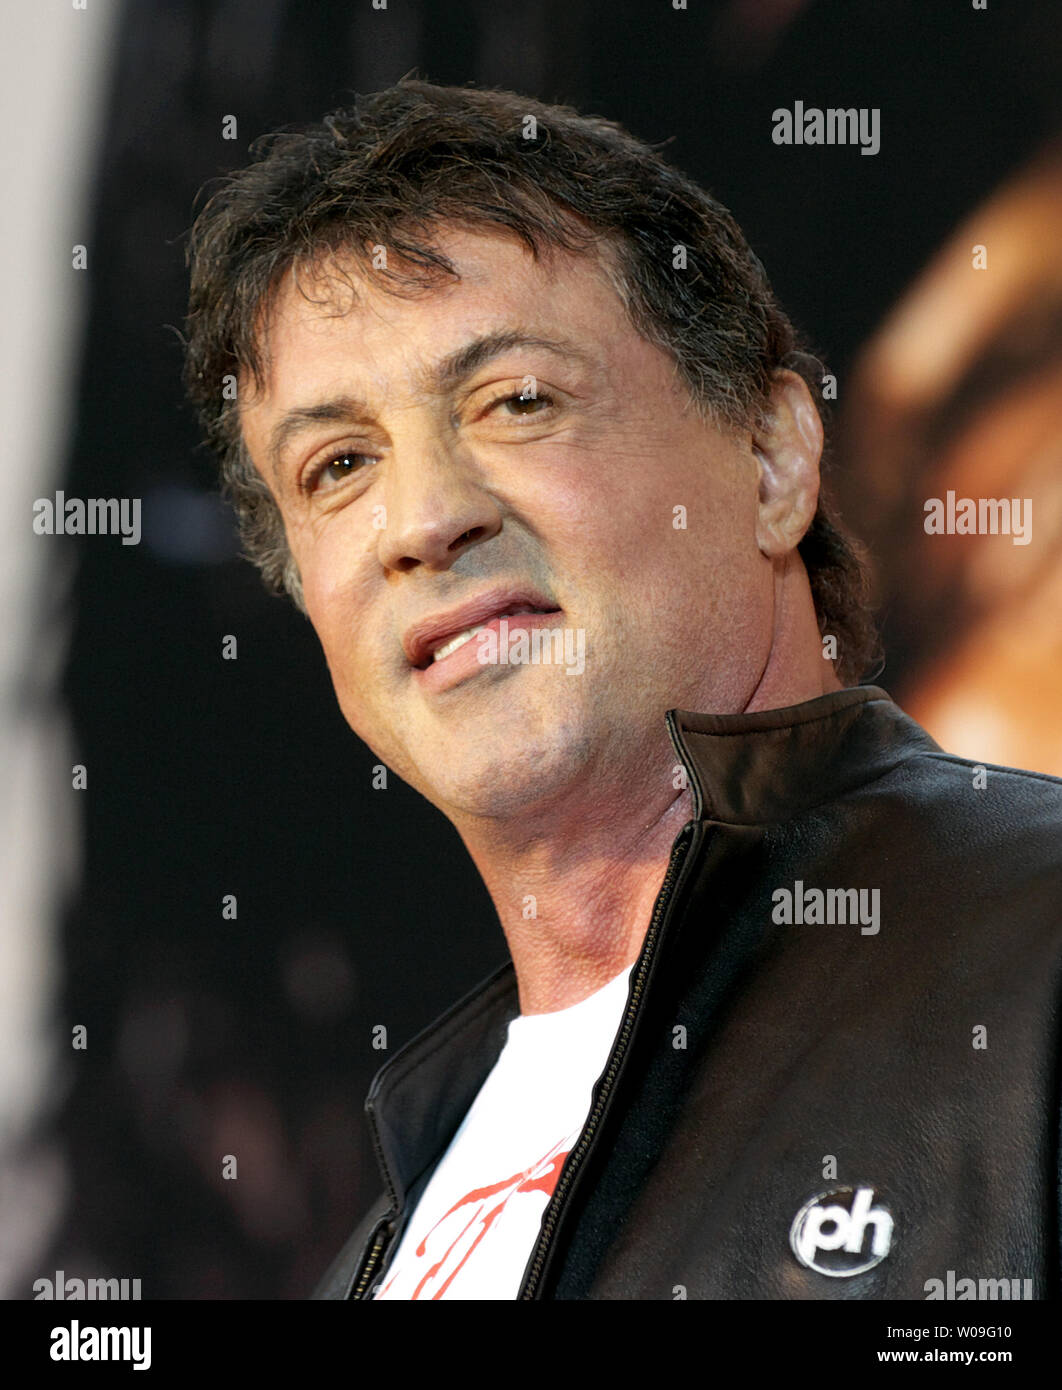 Hollywood's actor Sylvester Stallone attends the premiere for his film 'Rambo' at Tokyo, Japan on May 8, 2008. (UPI Photo/Keizo Mori) - Stock Image